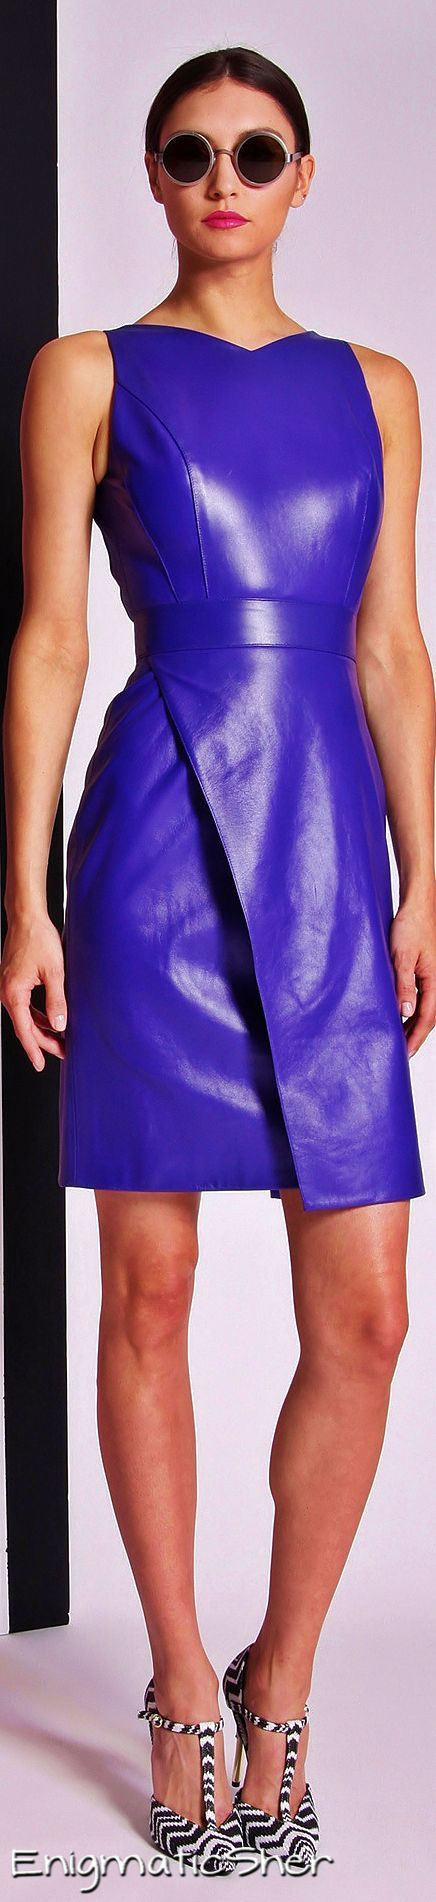 Christian Siriano Resort 2014 #Leather #Fashion http://www.waxhaws.com/